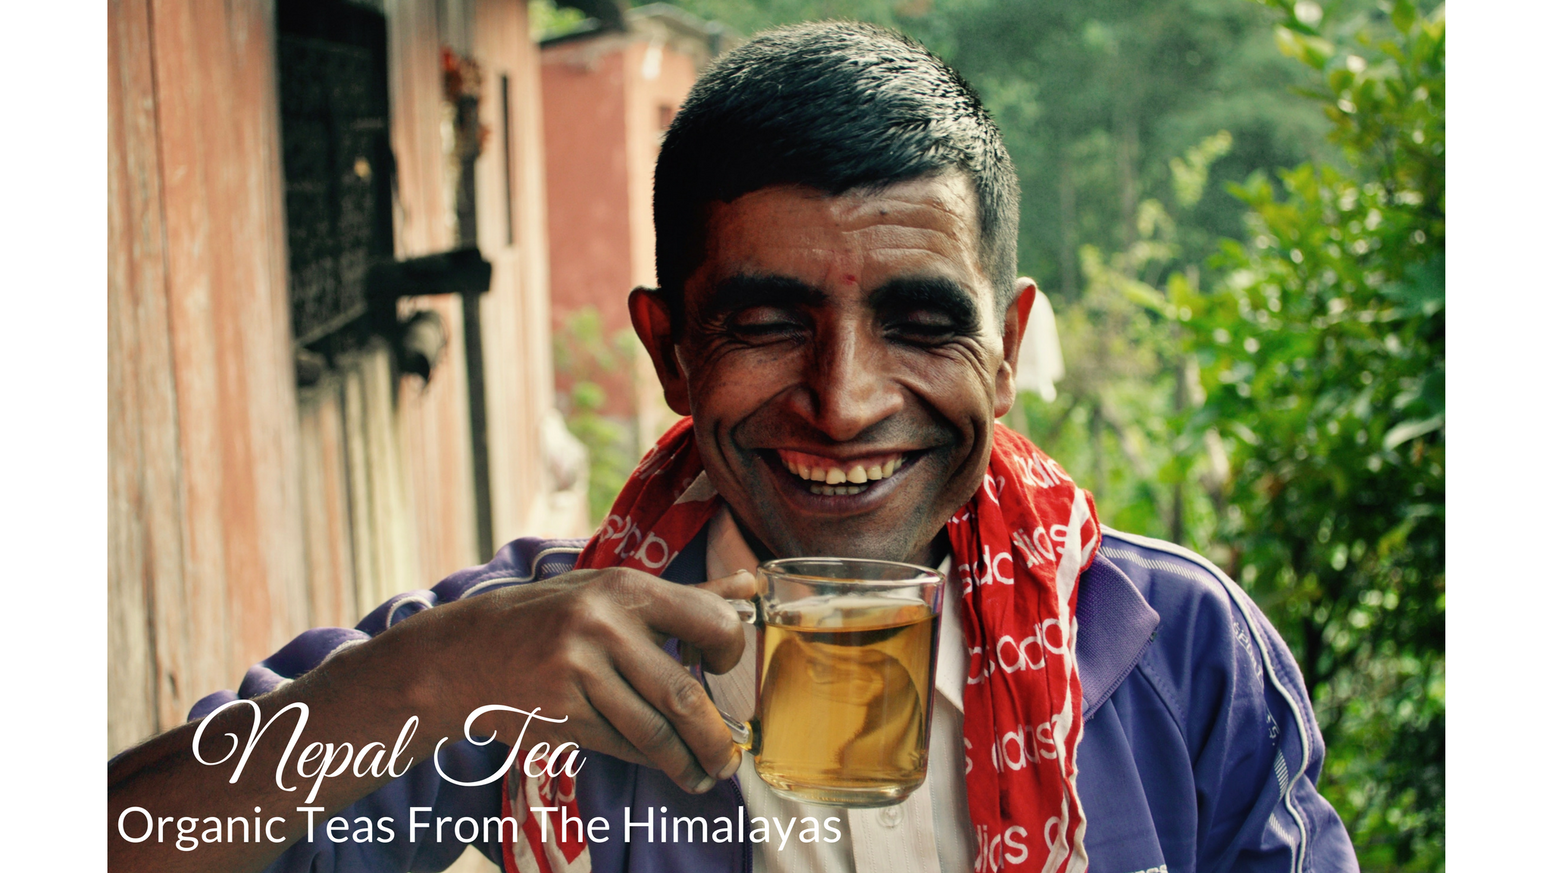 Enjoy finest organic teas from the Himalayas, improve the lives of farmers and educate their children.